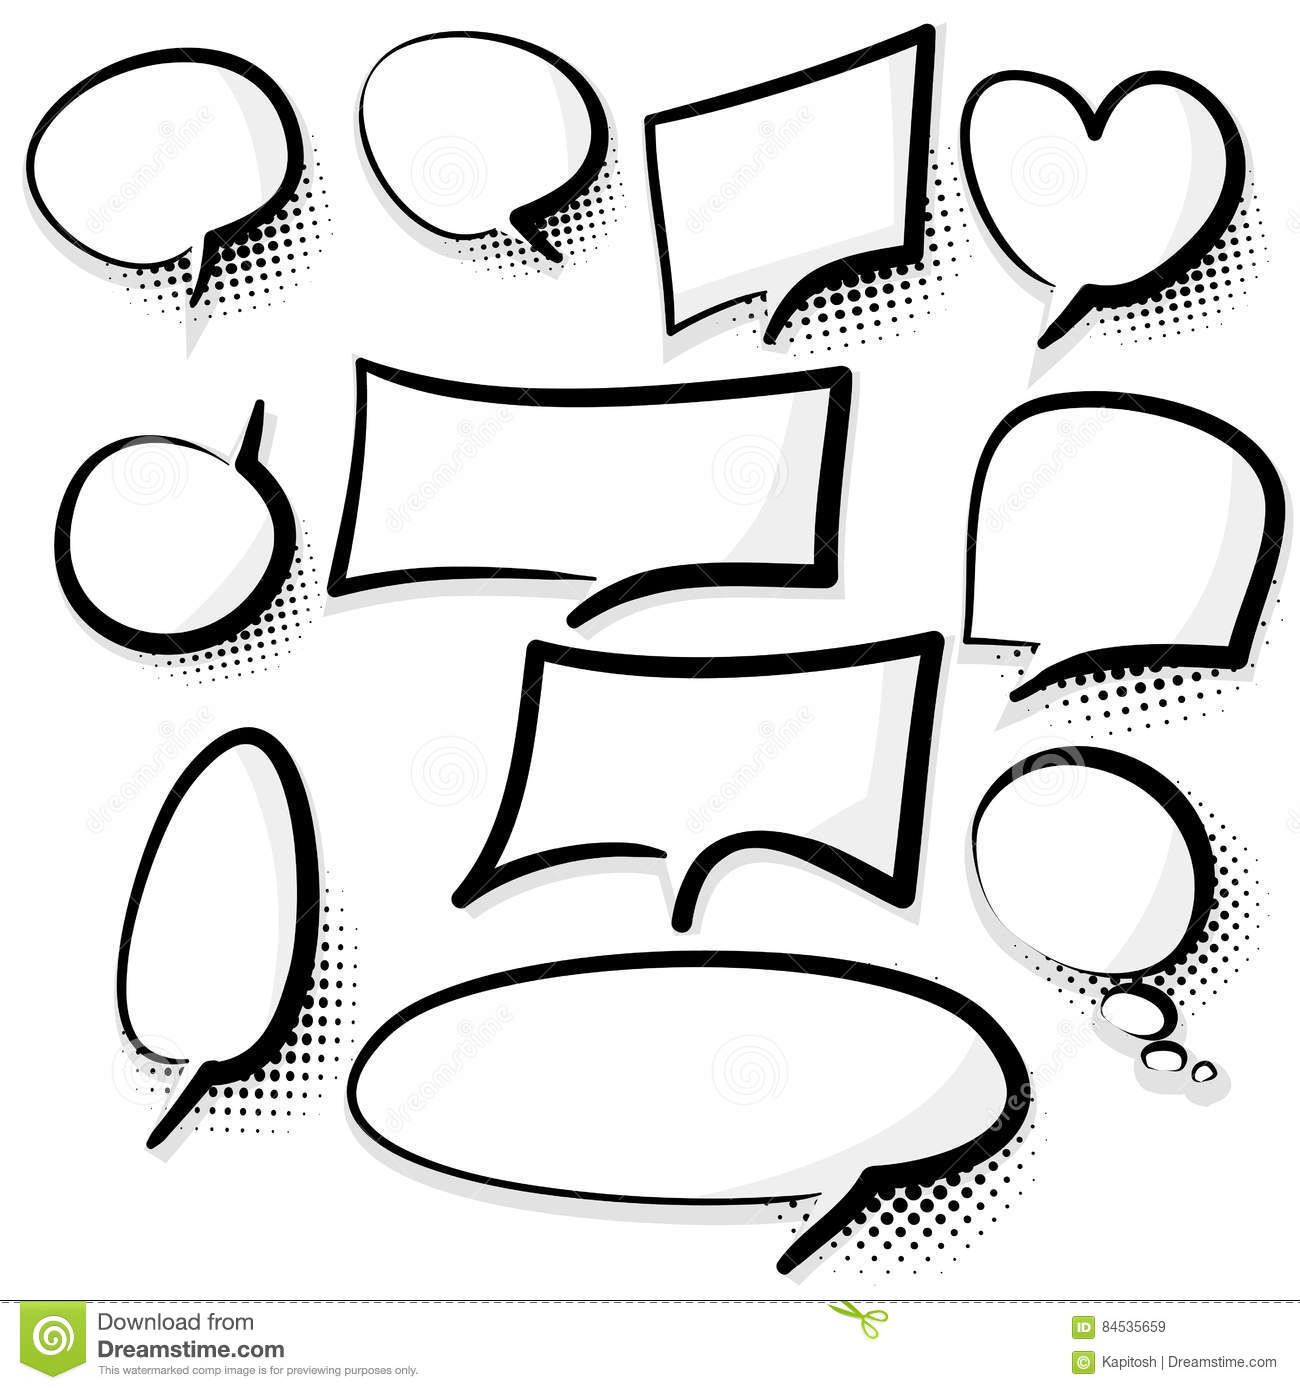 clear comics book text bubble stock vector illustration of comic